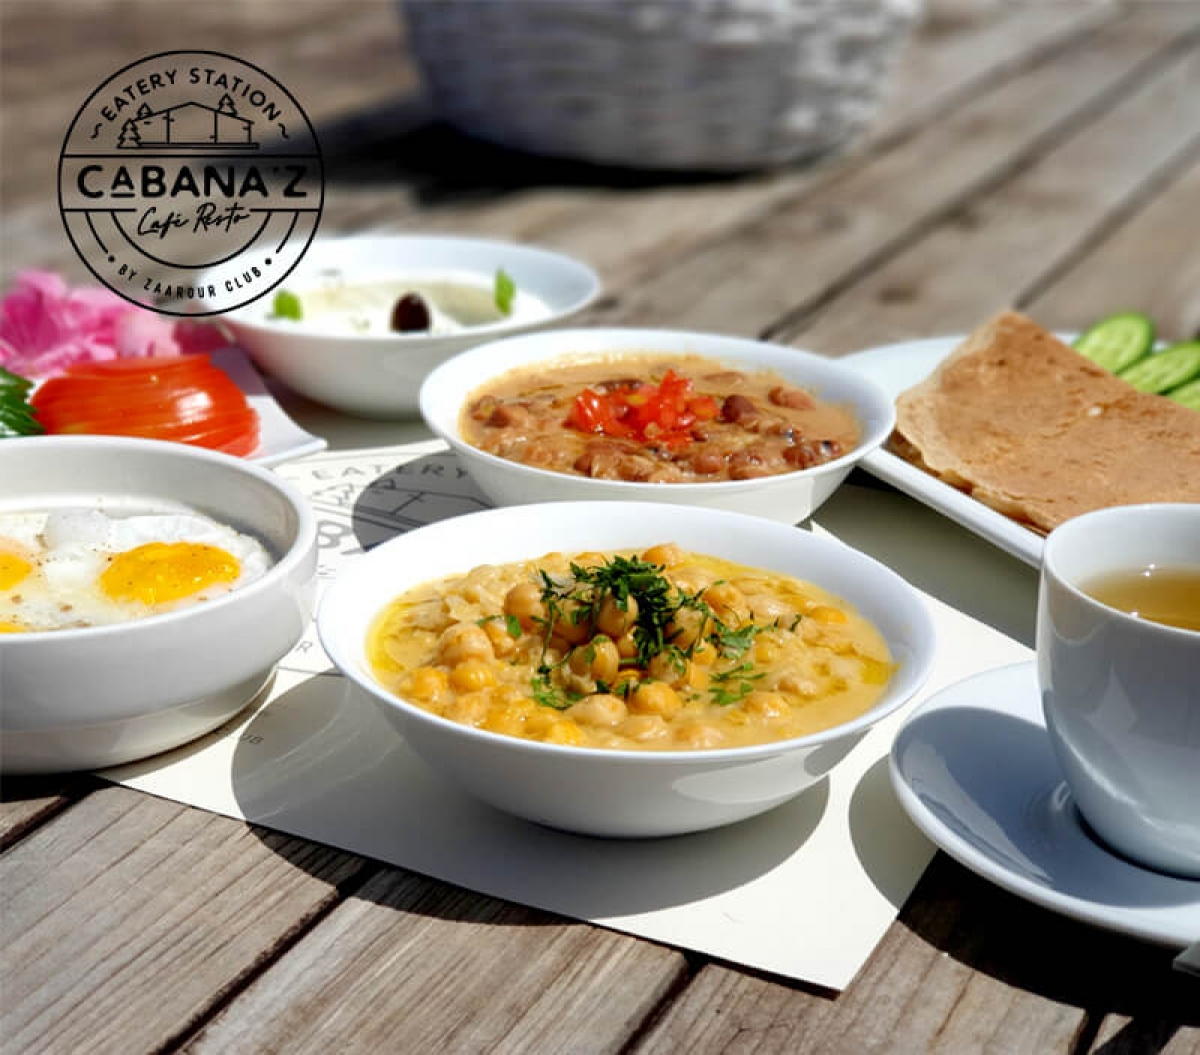 Come try our lebanese breakfast